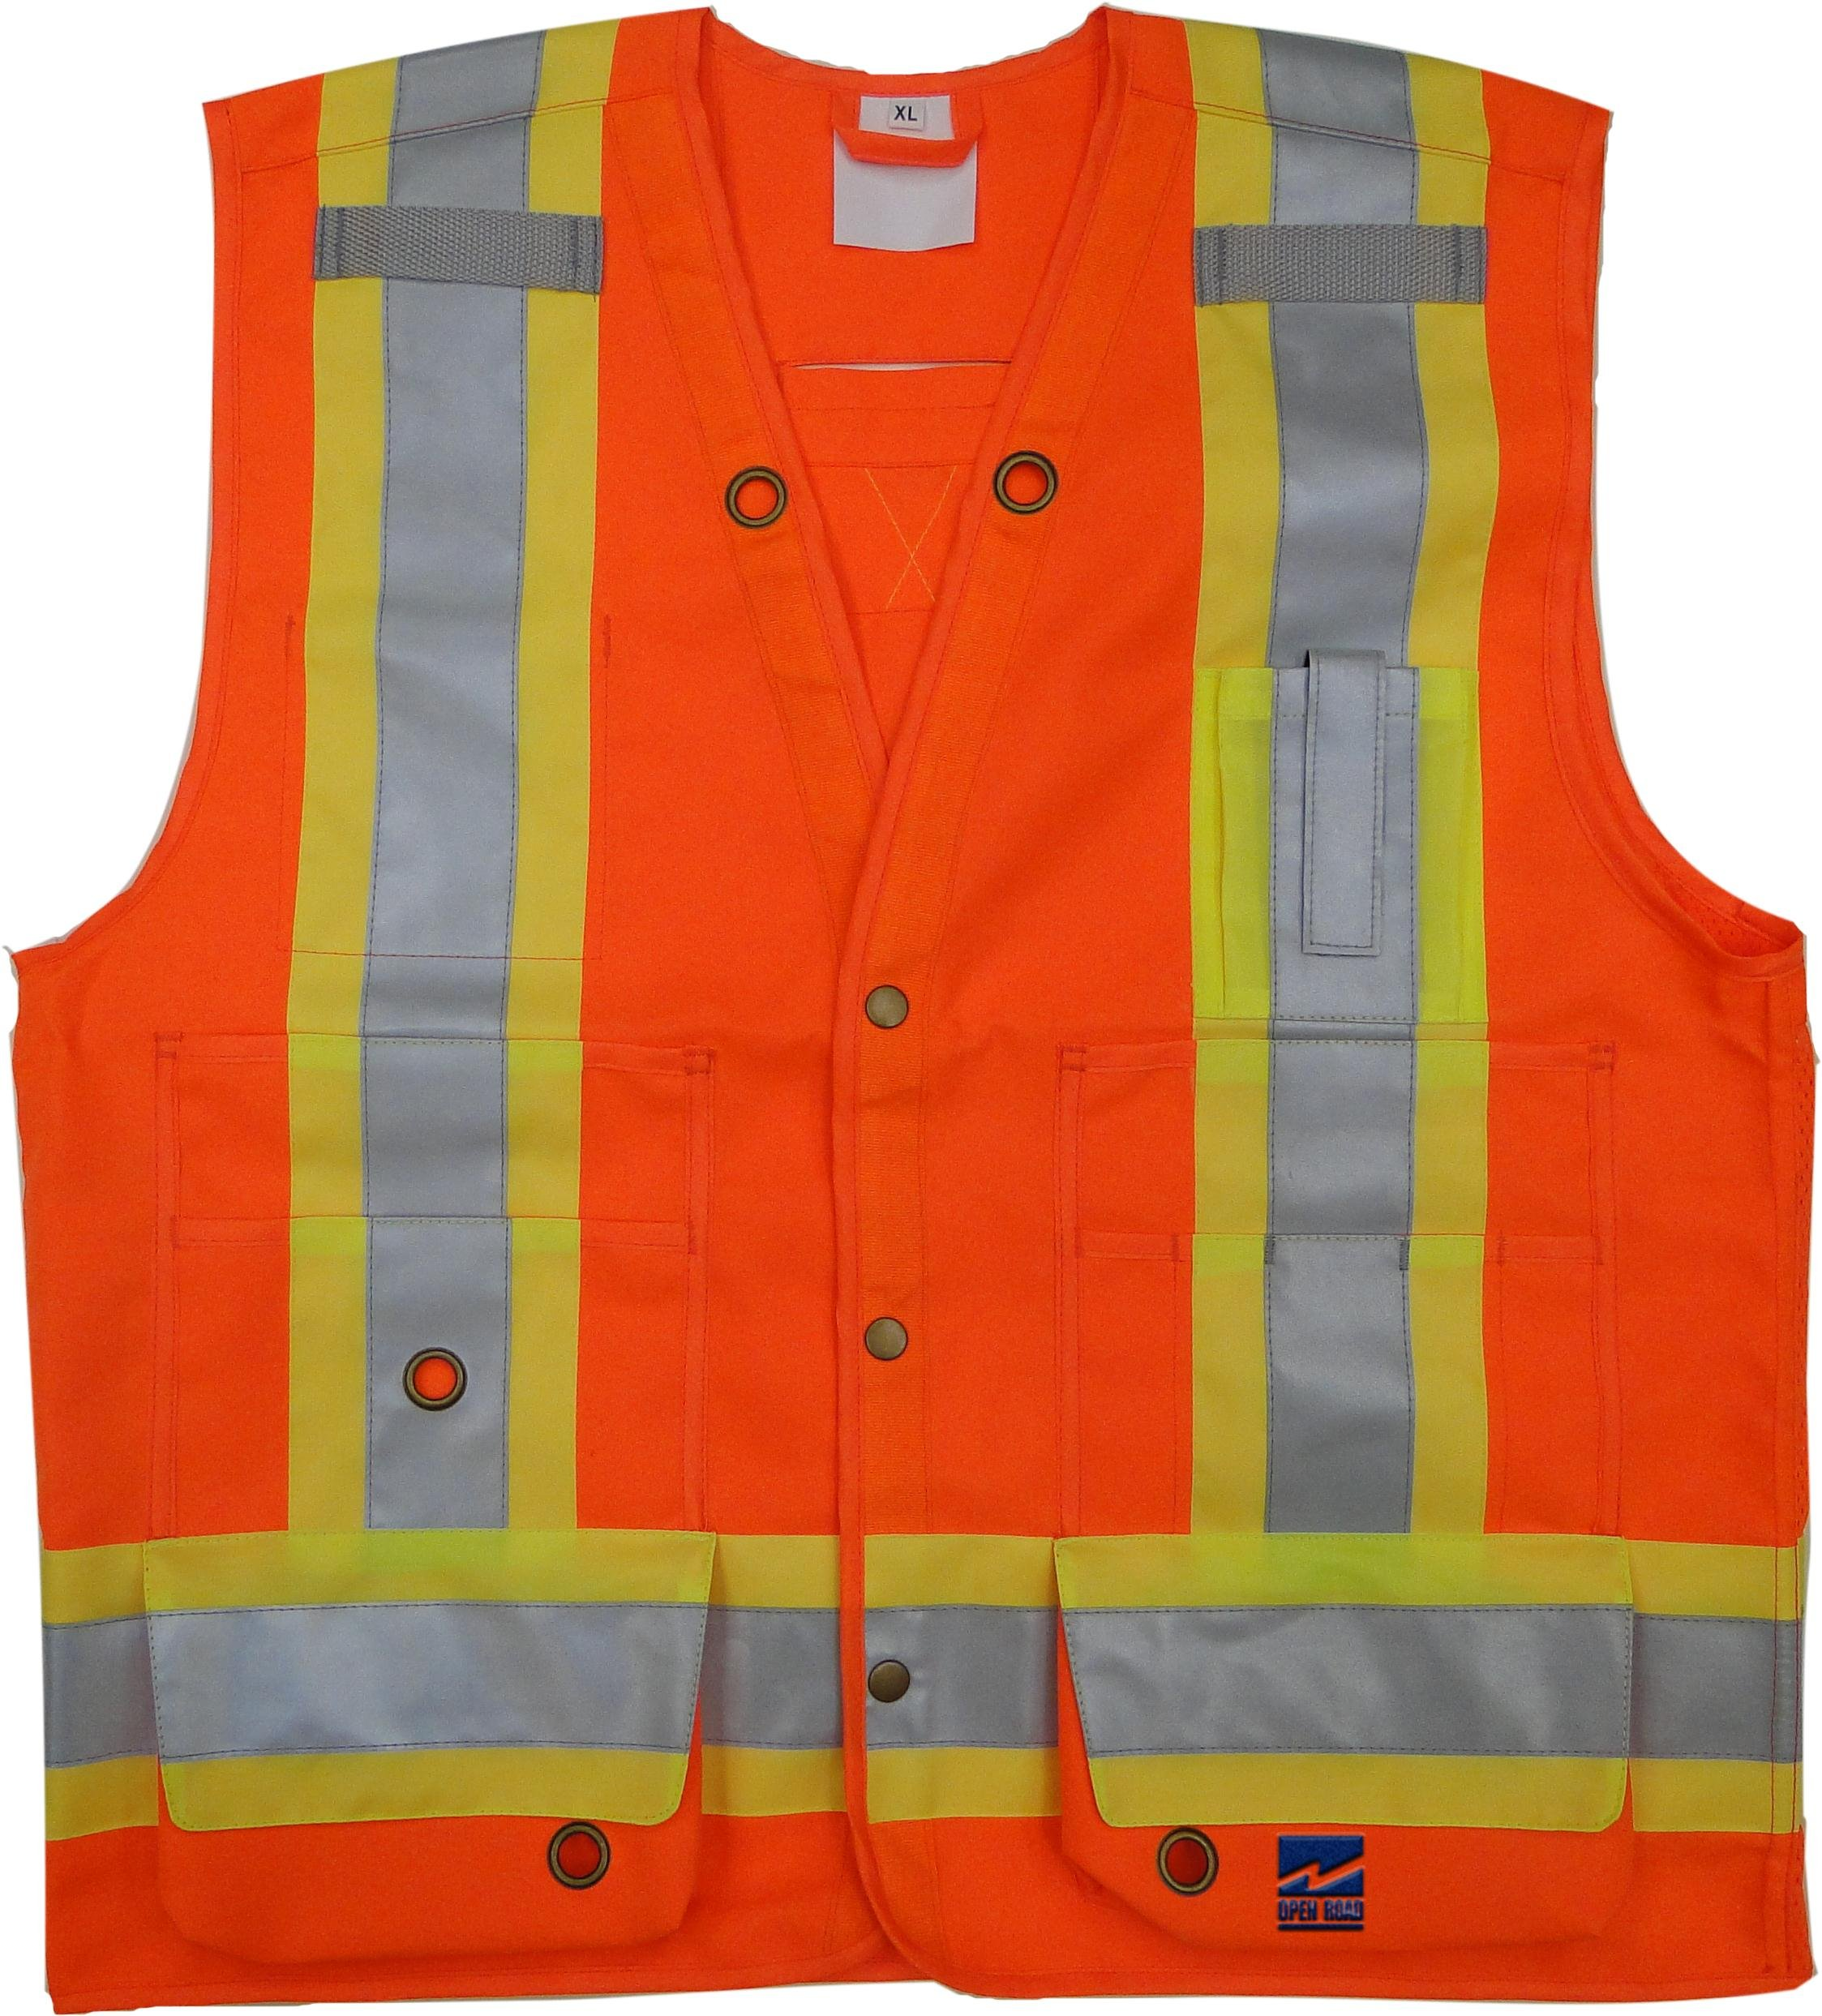 Viking Open Road Surveyor Hi-Vis Safety Vest, Hi-Vis Orange, XX-Large